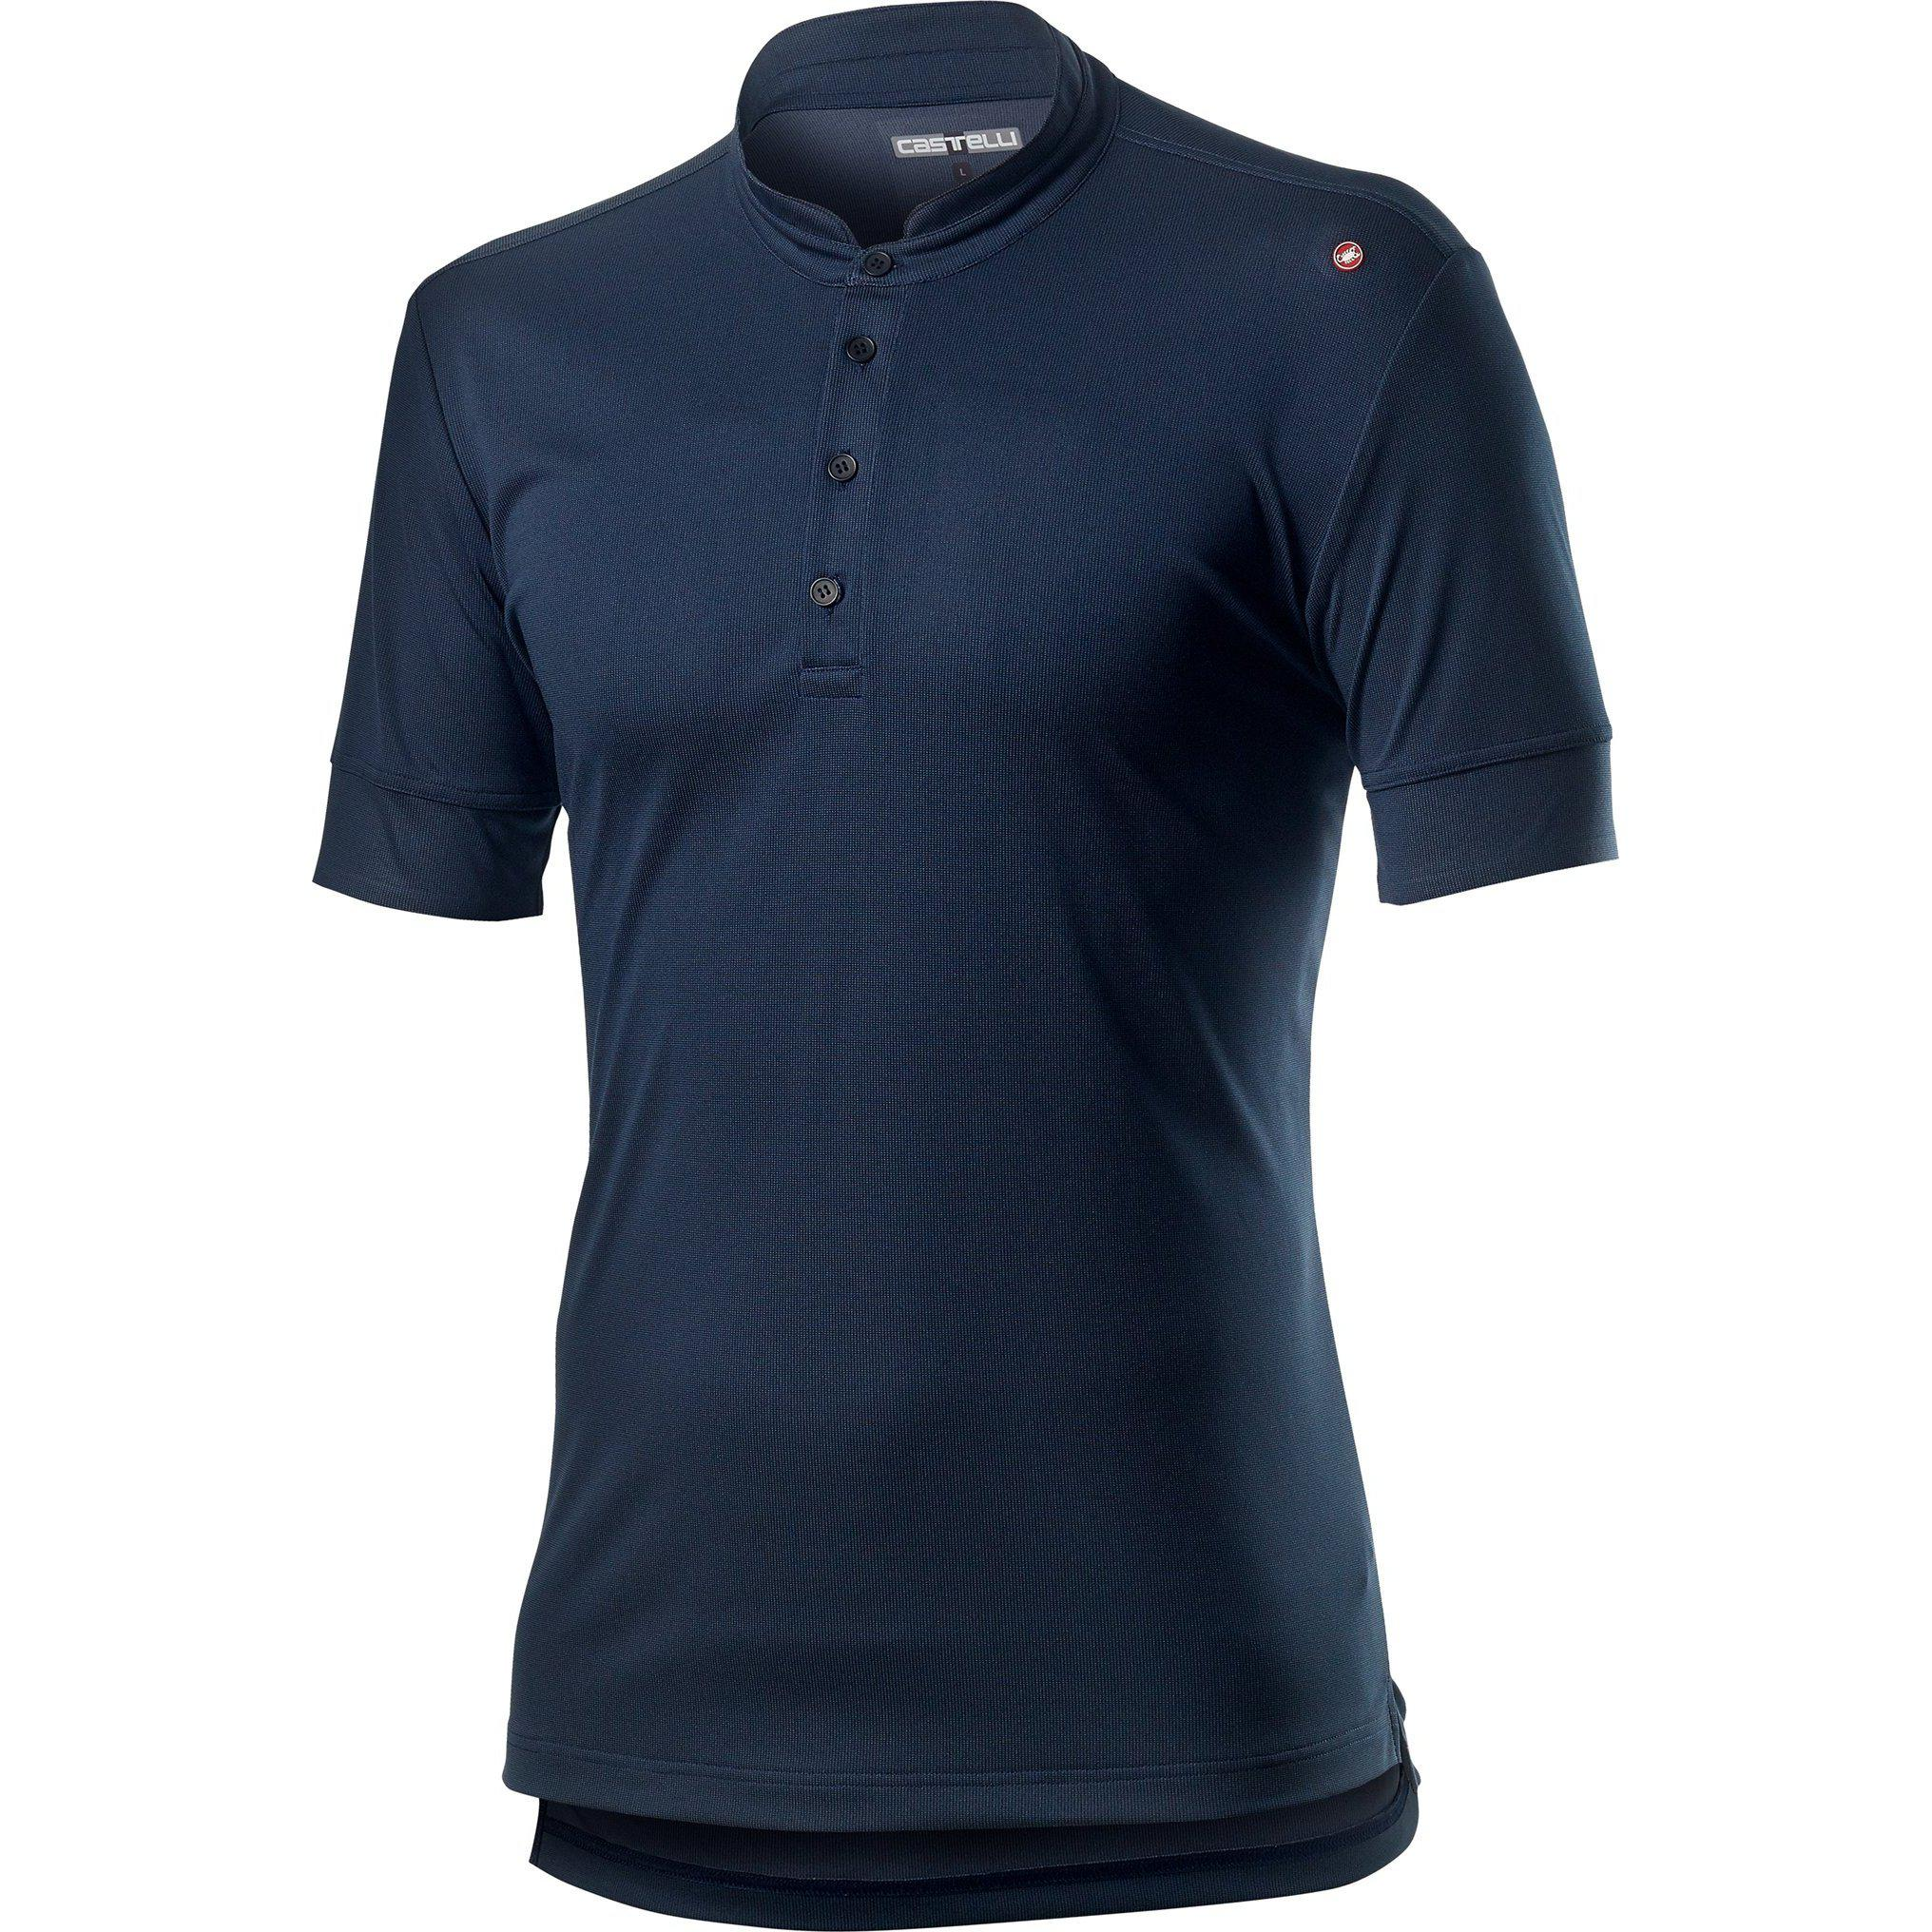 Castelli-Castelli Tech Polo Shirt-Dark Infinity Blue-XS-CS201040411-saddleback-elite-performance-cycling